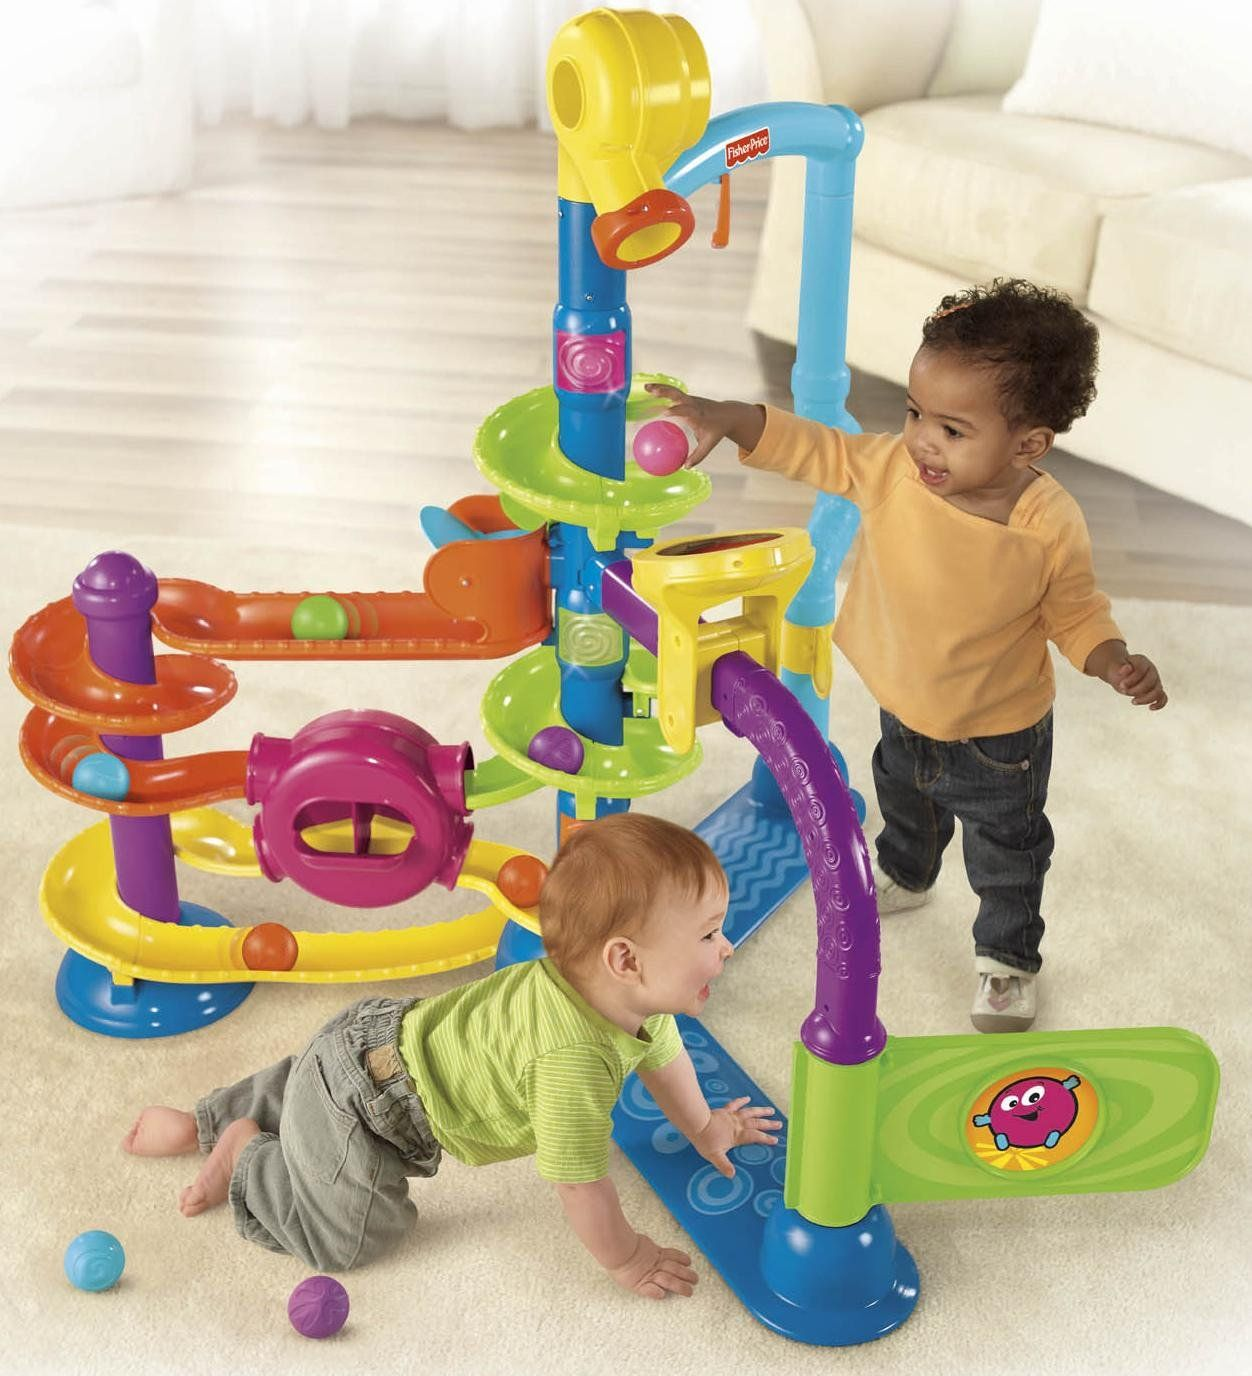 1 year baby toys images  Best Gifts and Toys for  Year Old Boys